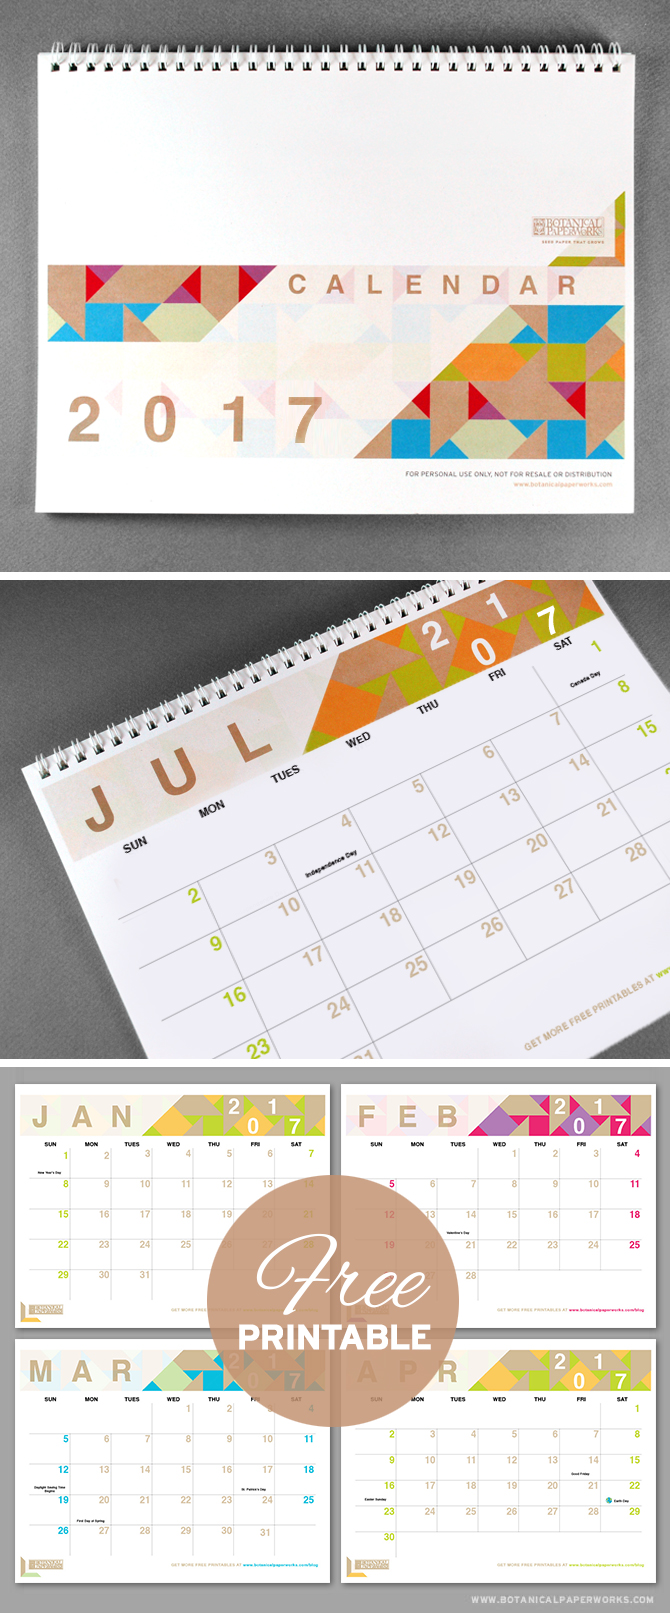 With bright pops of colour and a chic modern design, this 2017 free printable is perfect for capturing all of life's important dates. See more designs and download your favorite 2017 calendar on our blog!